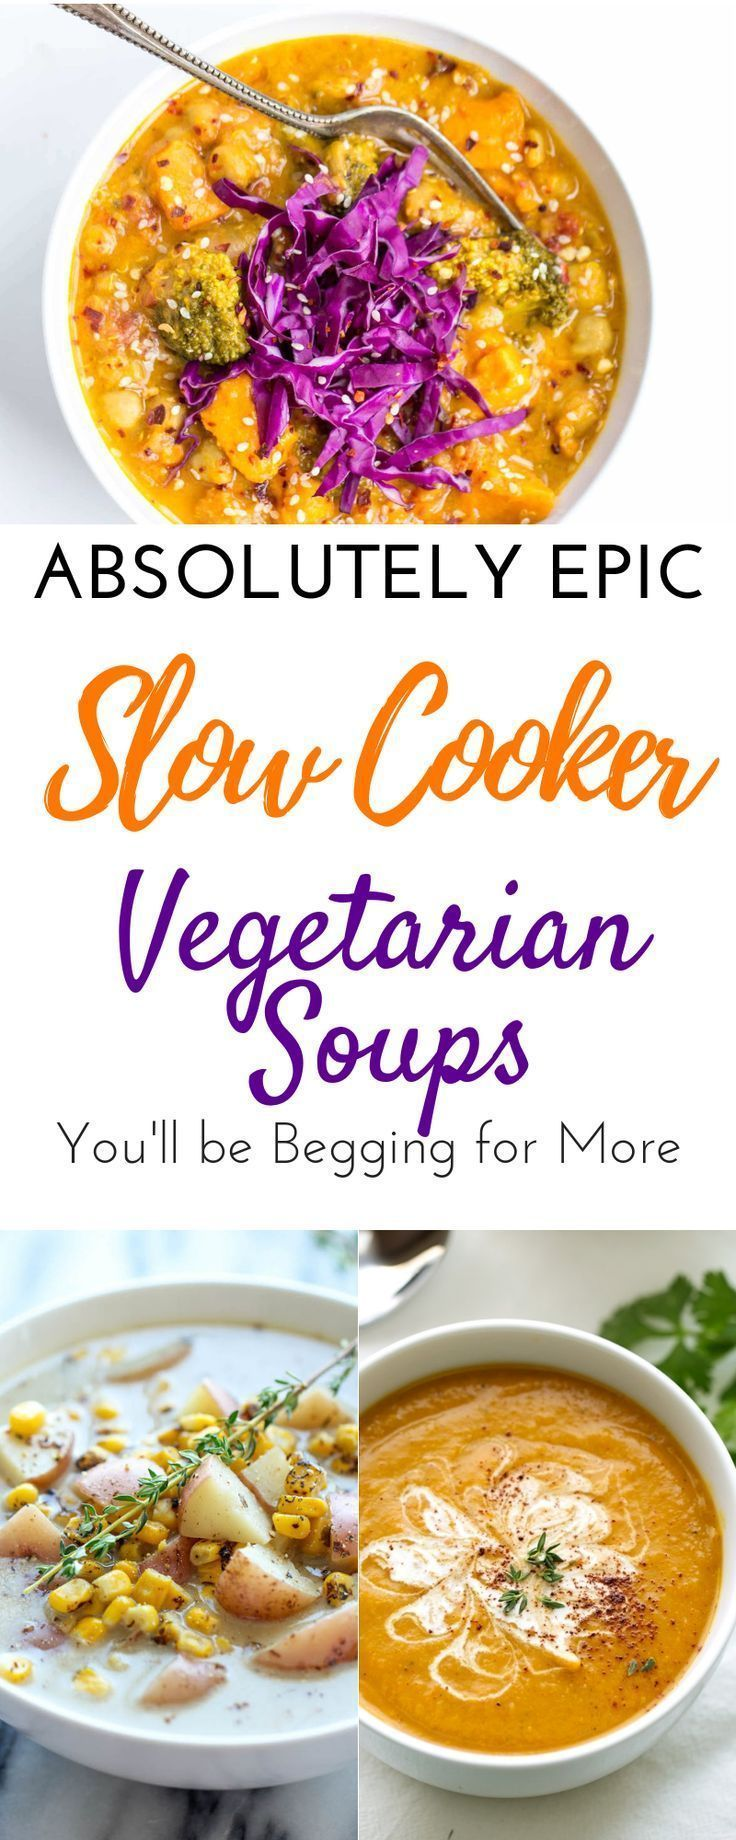 Easy Delicious Vegetarian Slow Cooker Soup Recipes for Clean Eating images